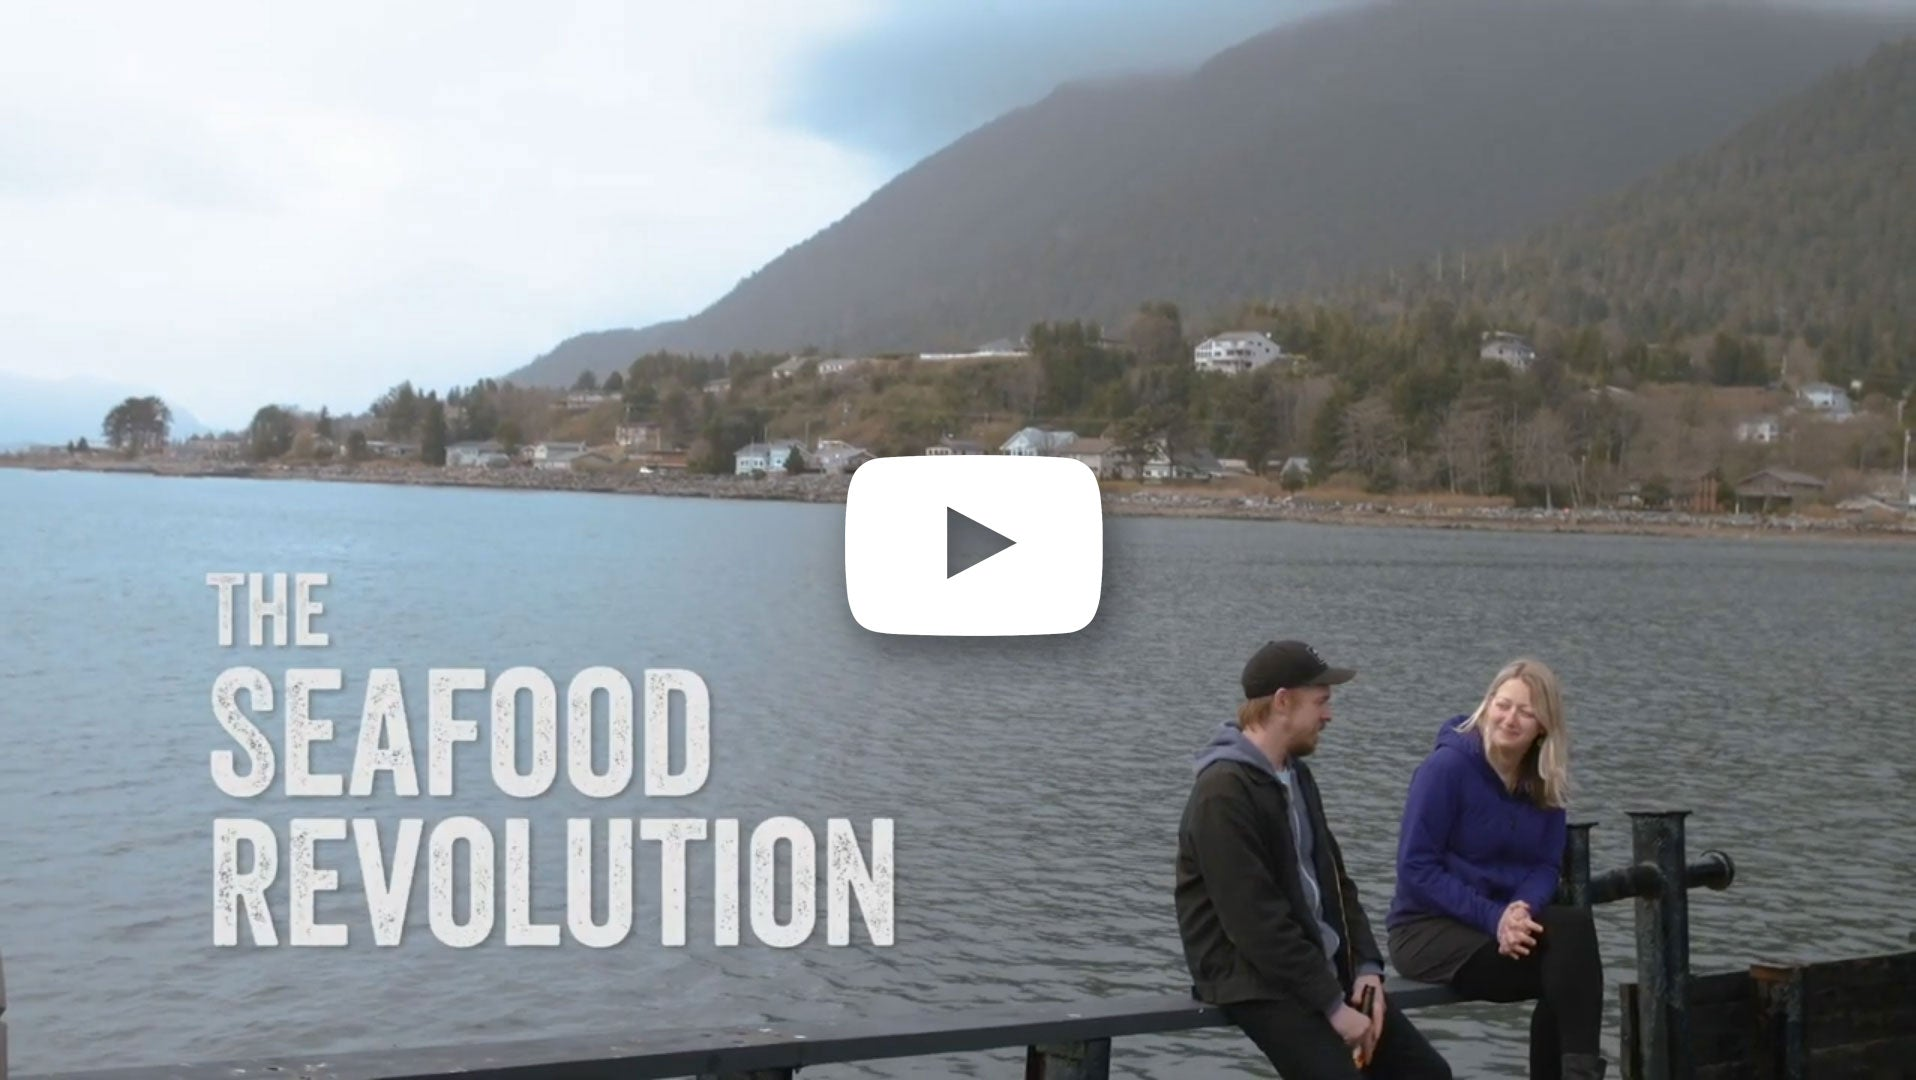 Our Seafood Revolution